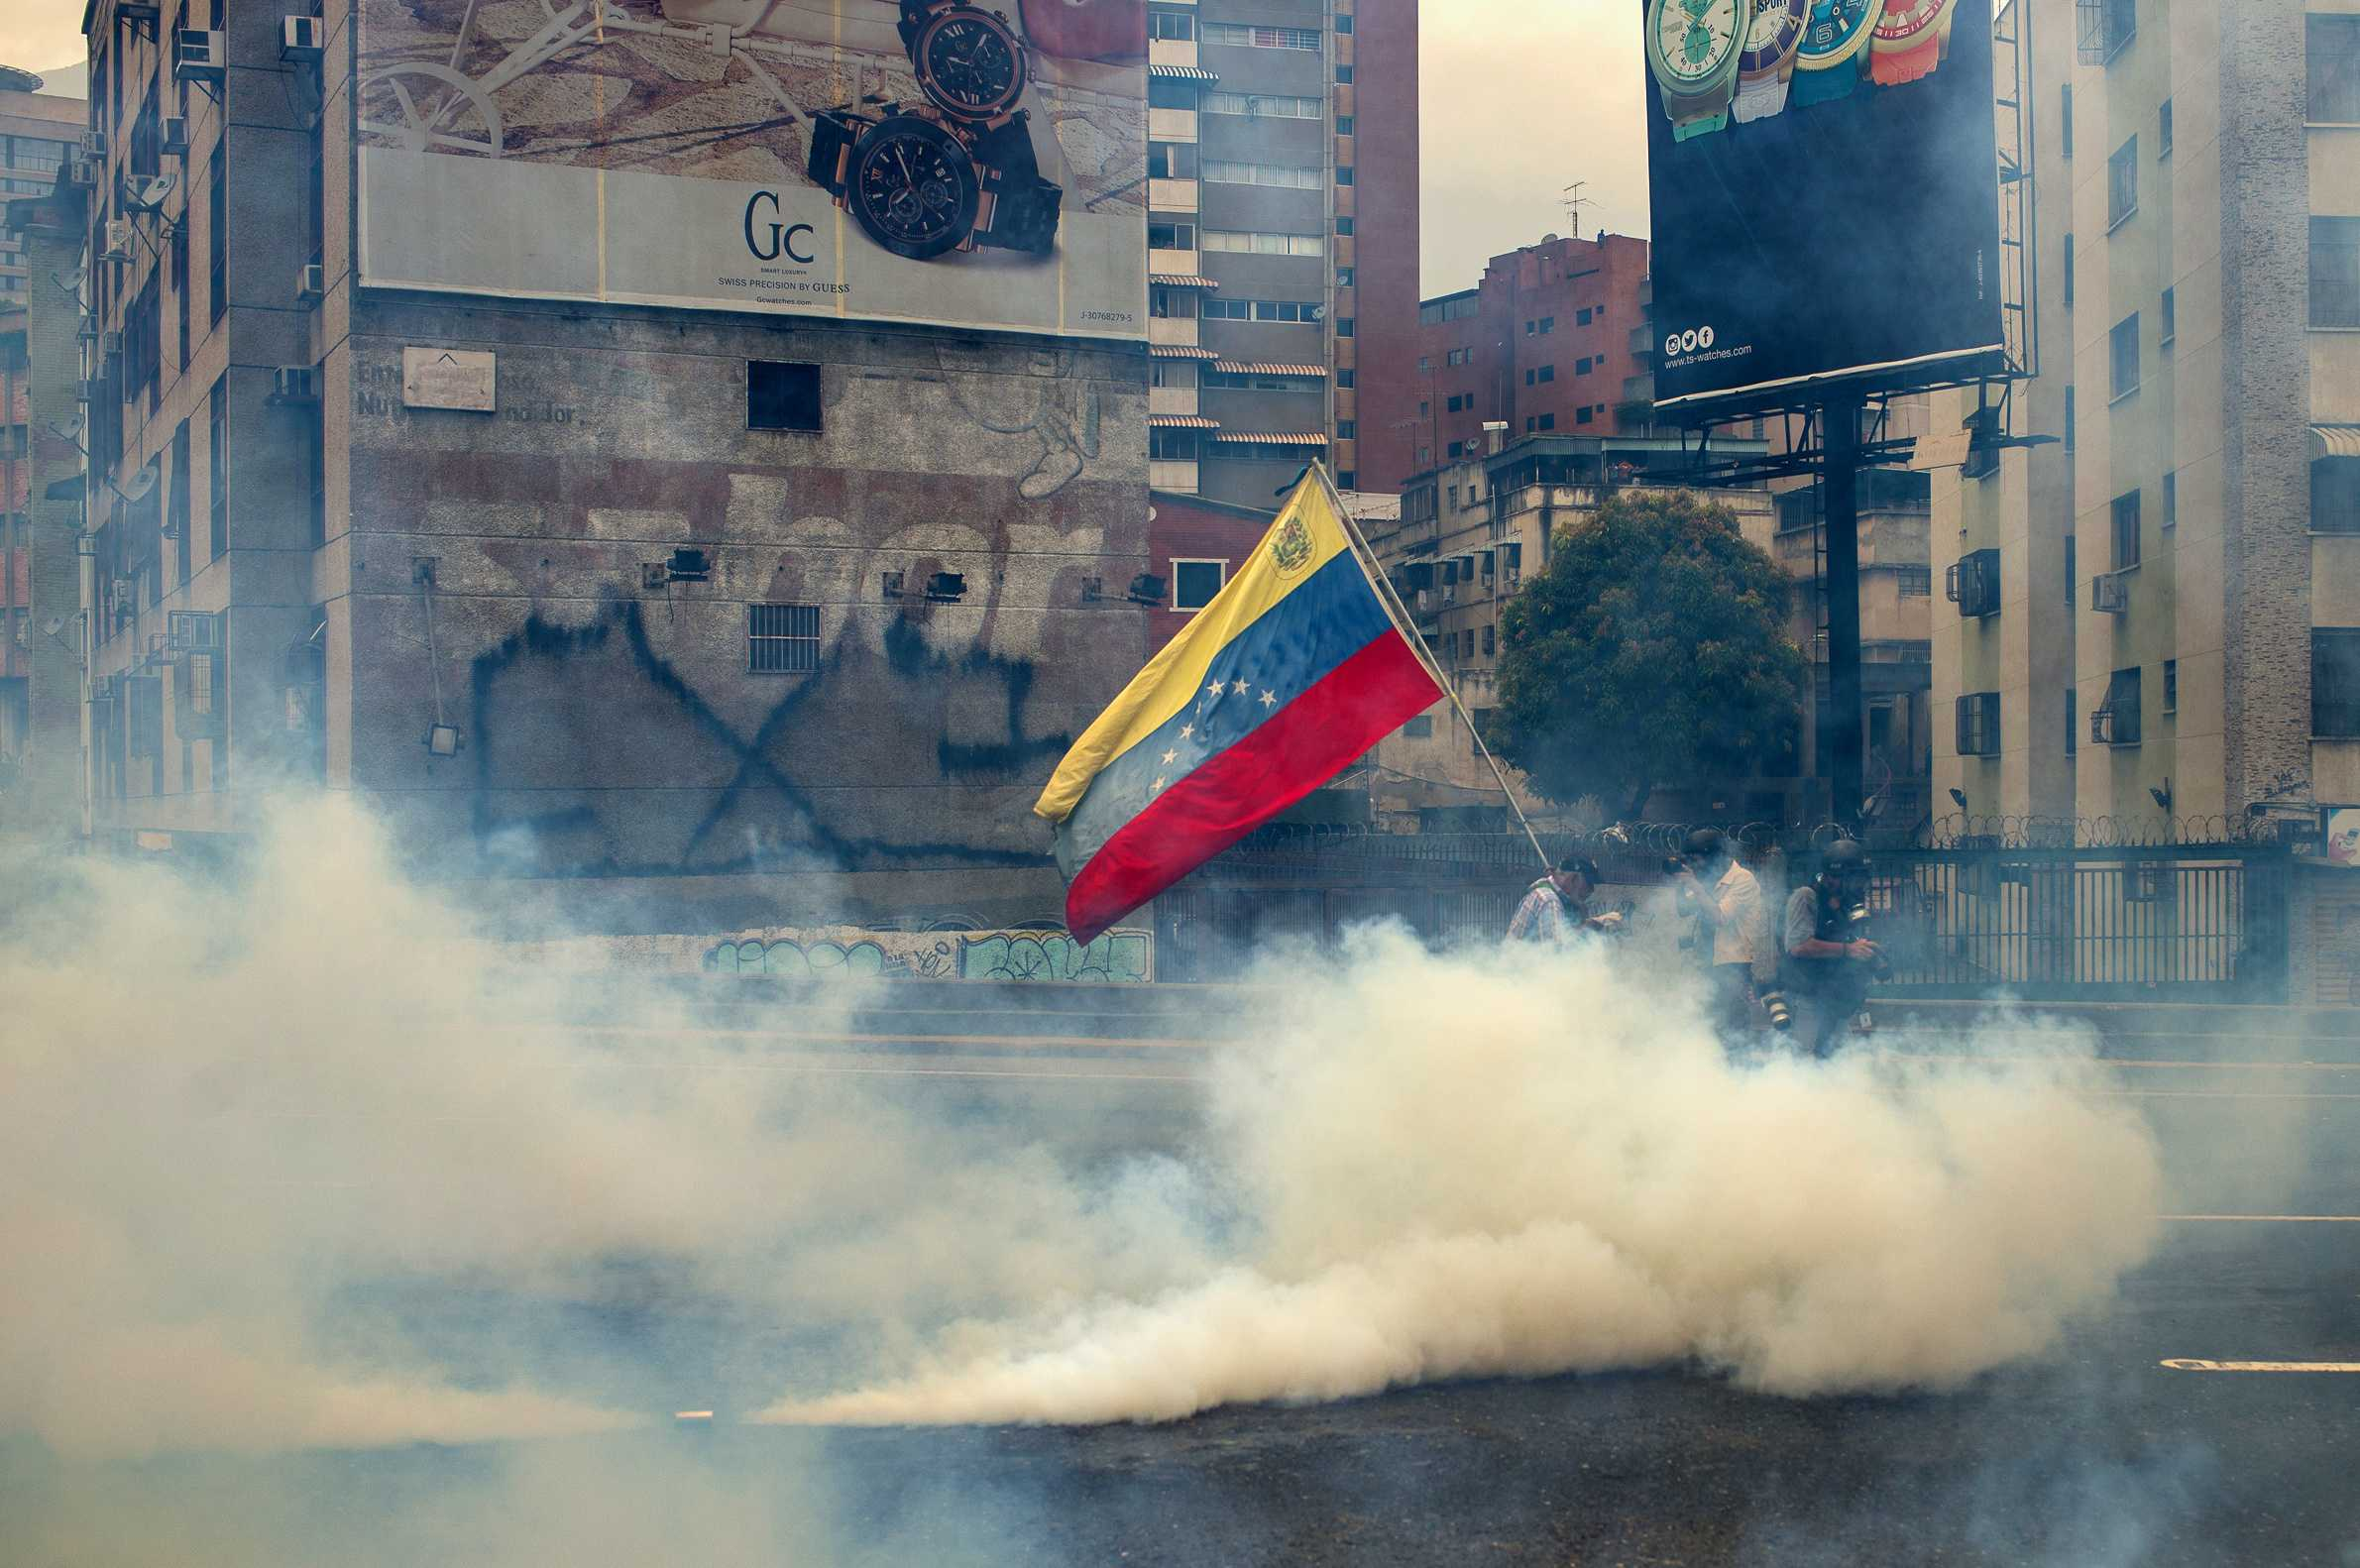 Protesters wearing masks carry the Venezuelan flag amid a tear-gas cloud where mass demonstrations turned into riots in Caracas, Venezuela, on Wednesday, April 19, 2017. The opposition is demanding new elections and holding President Nicolas Maduro responsible for the deep political and economical crisis in the oil-rich country. (Manaure Quintero/DPA/Zuma Press/TNS)